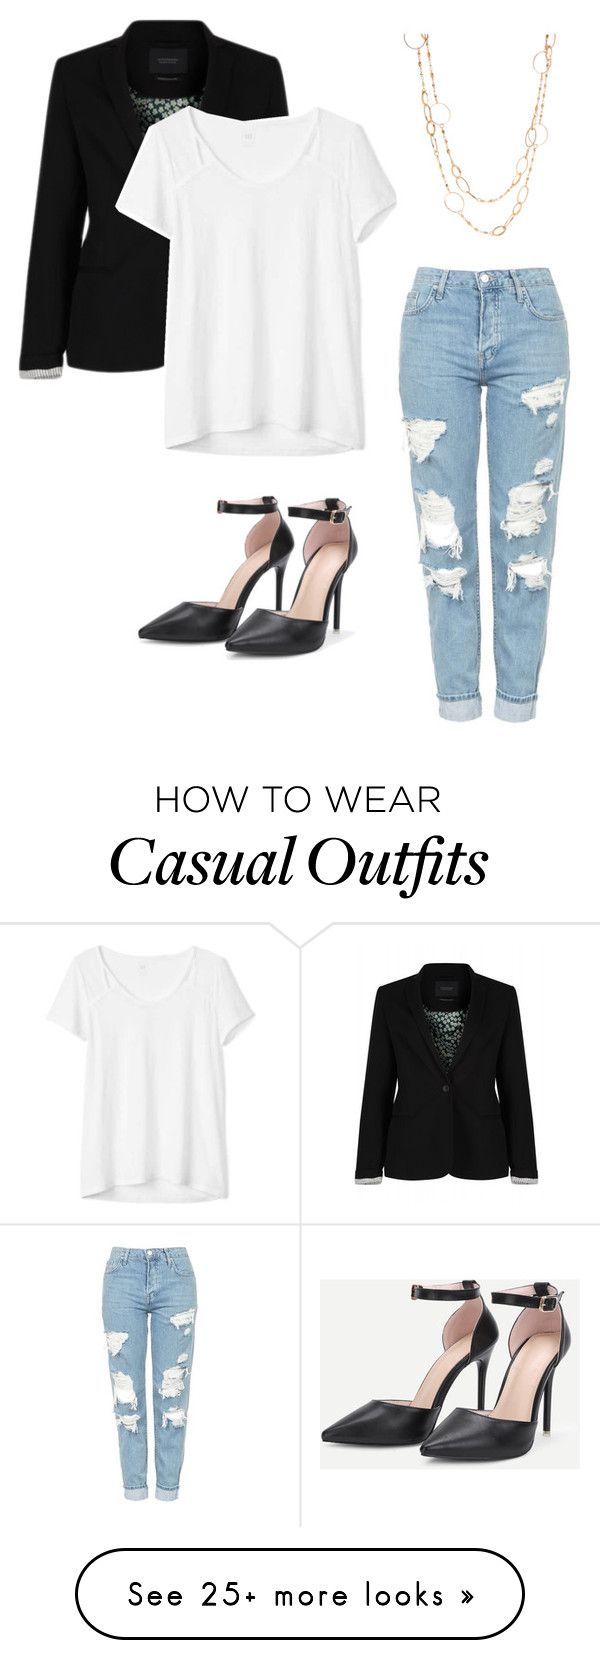 """""""Casual But Classy"""" by shreyamohanty on Polyvore featuring Maison Scotch, Gap and Topshop"""